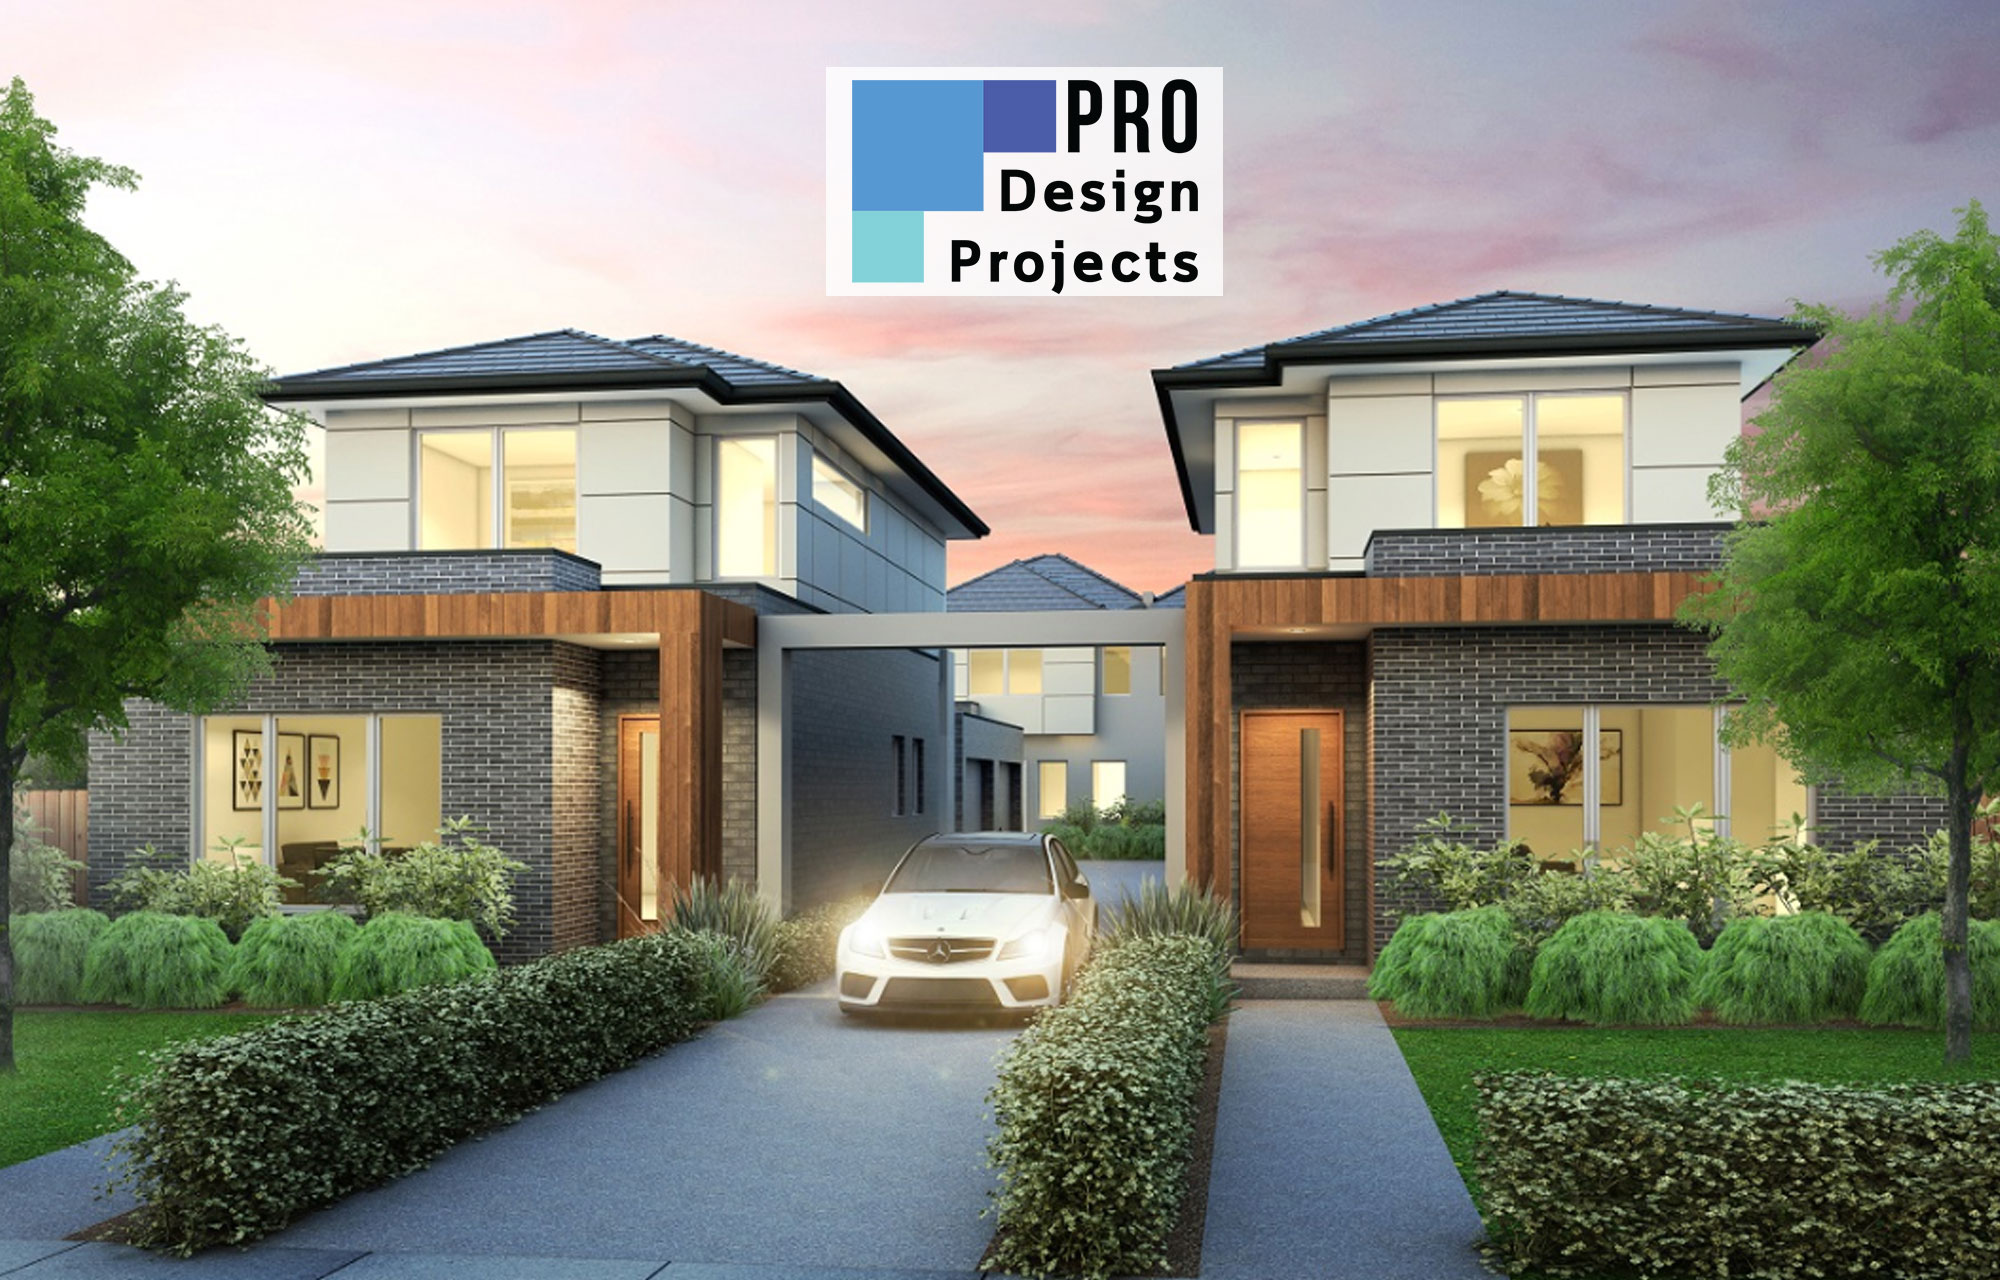 Www Pro Design Com pro design projects | experience custom builders and project